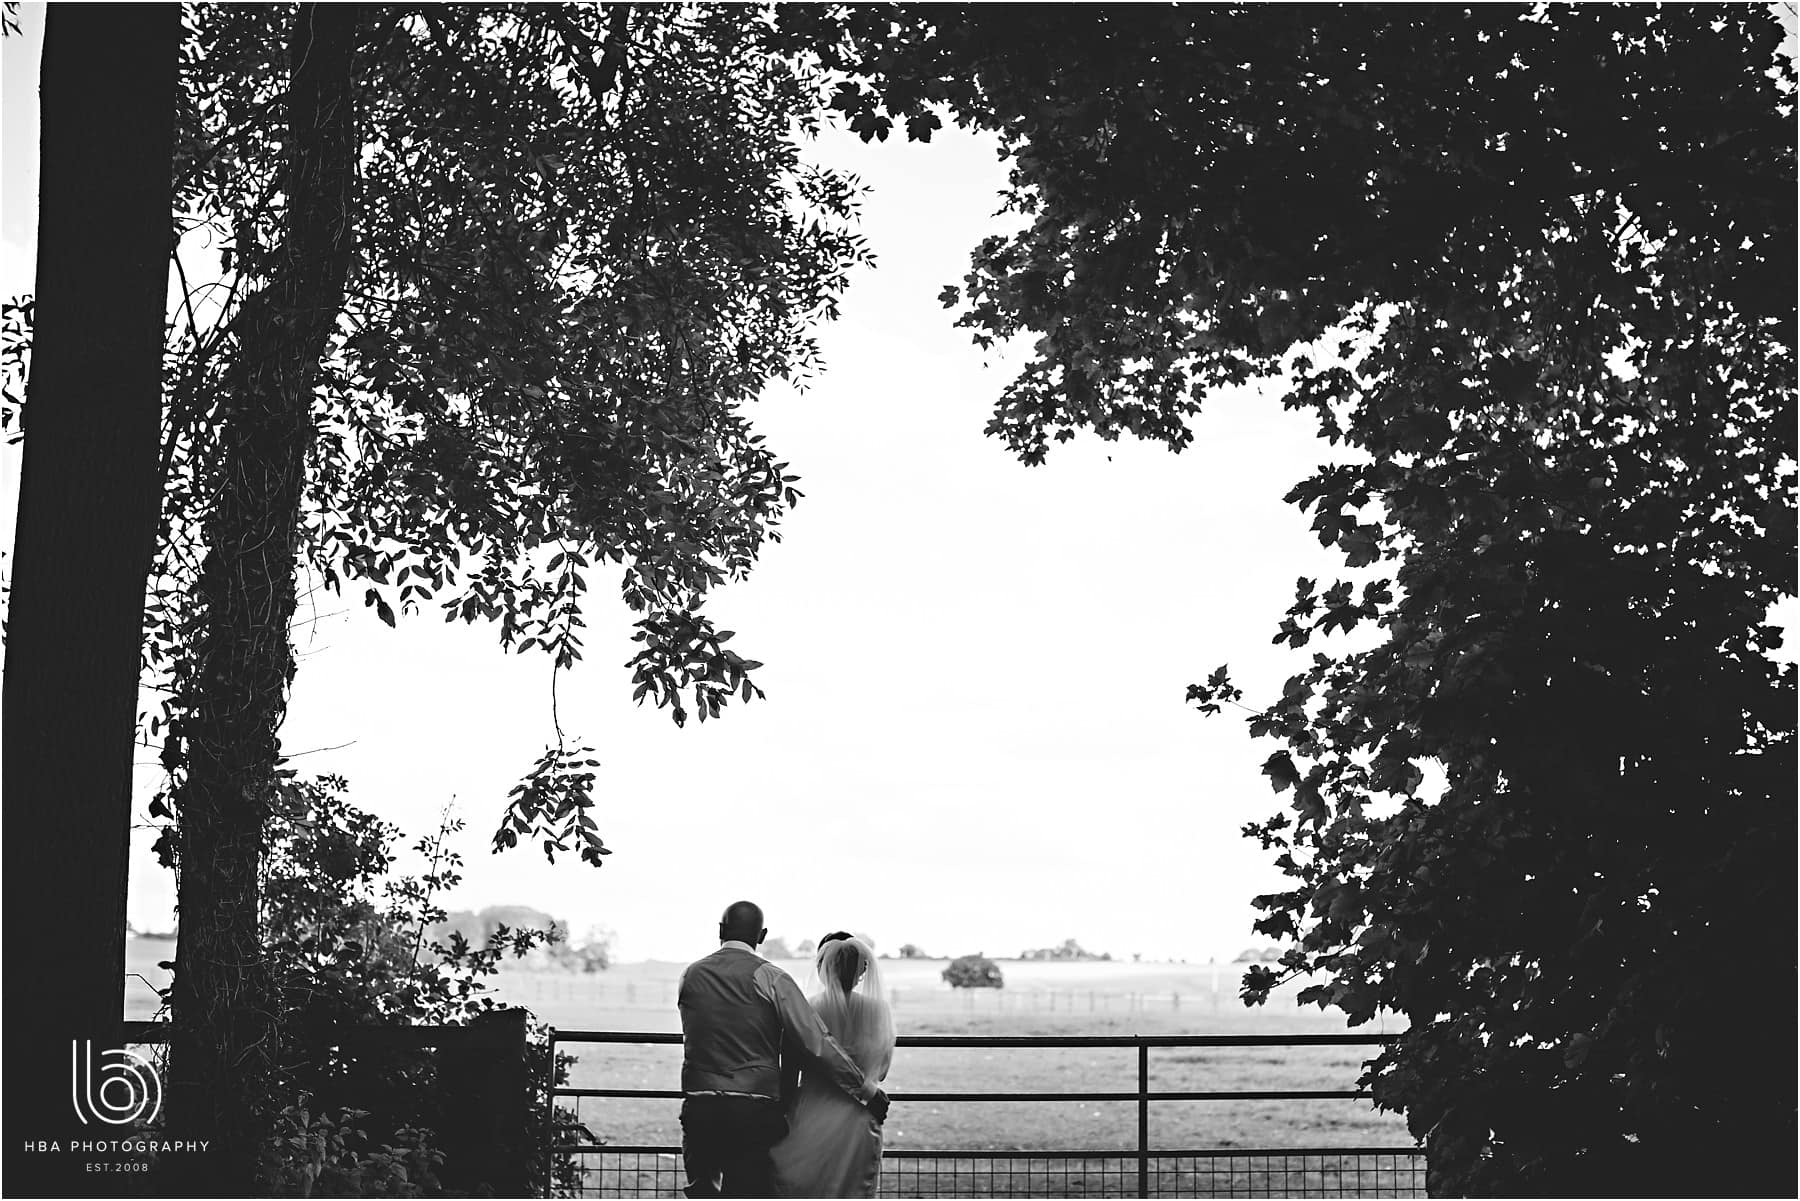 the bride & groom looking at the view